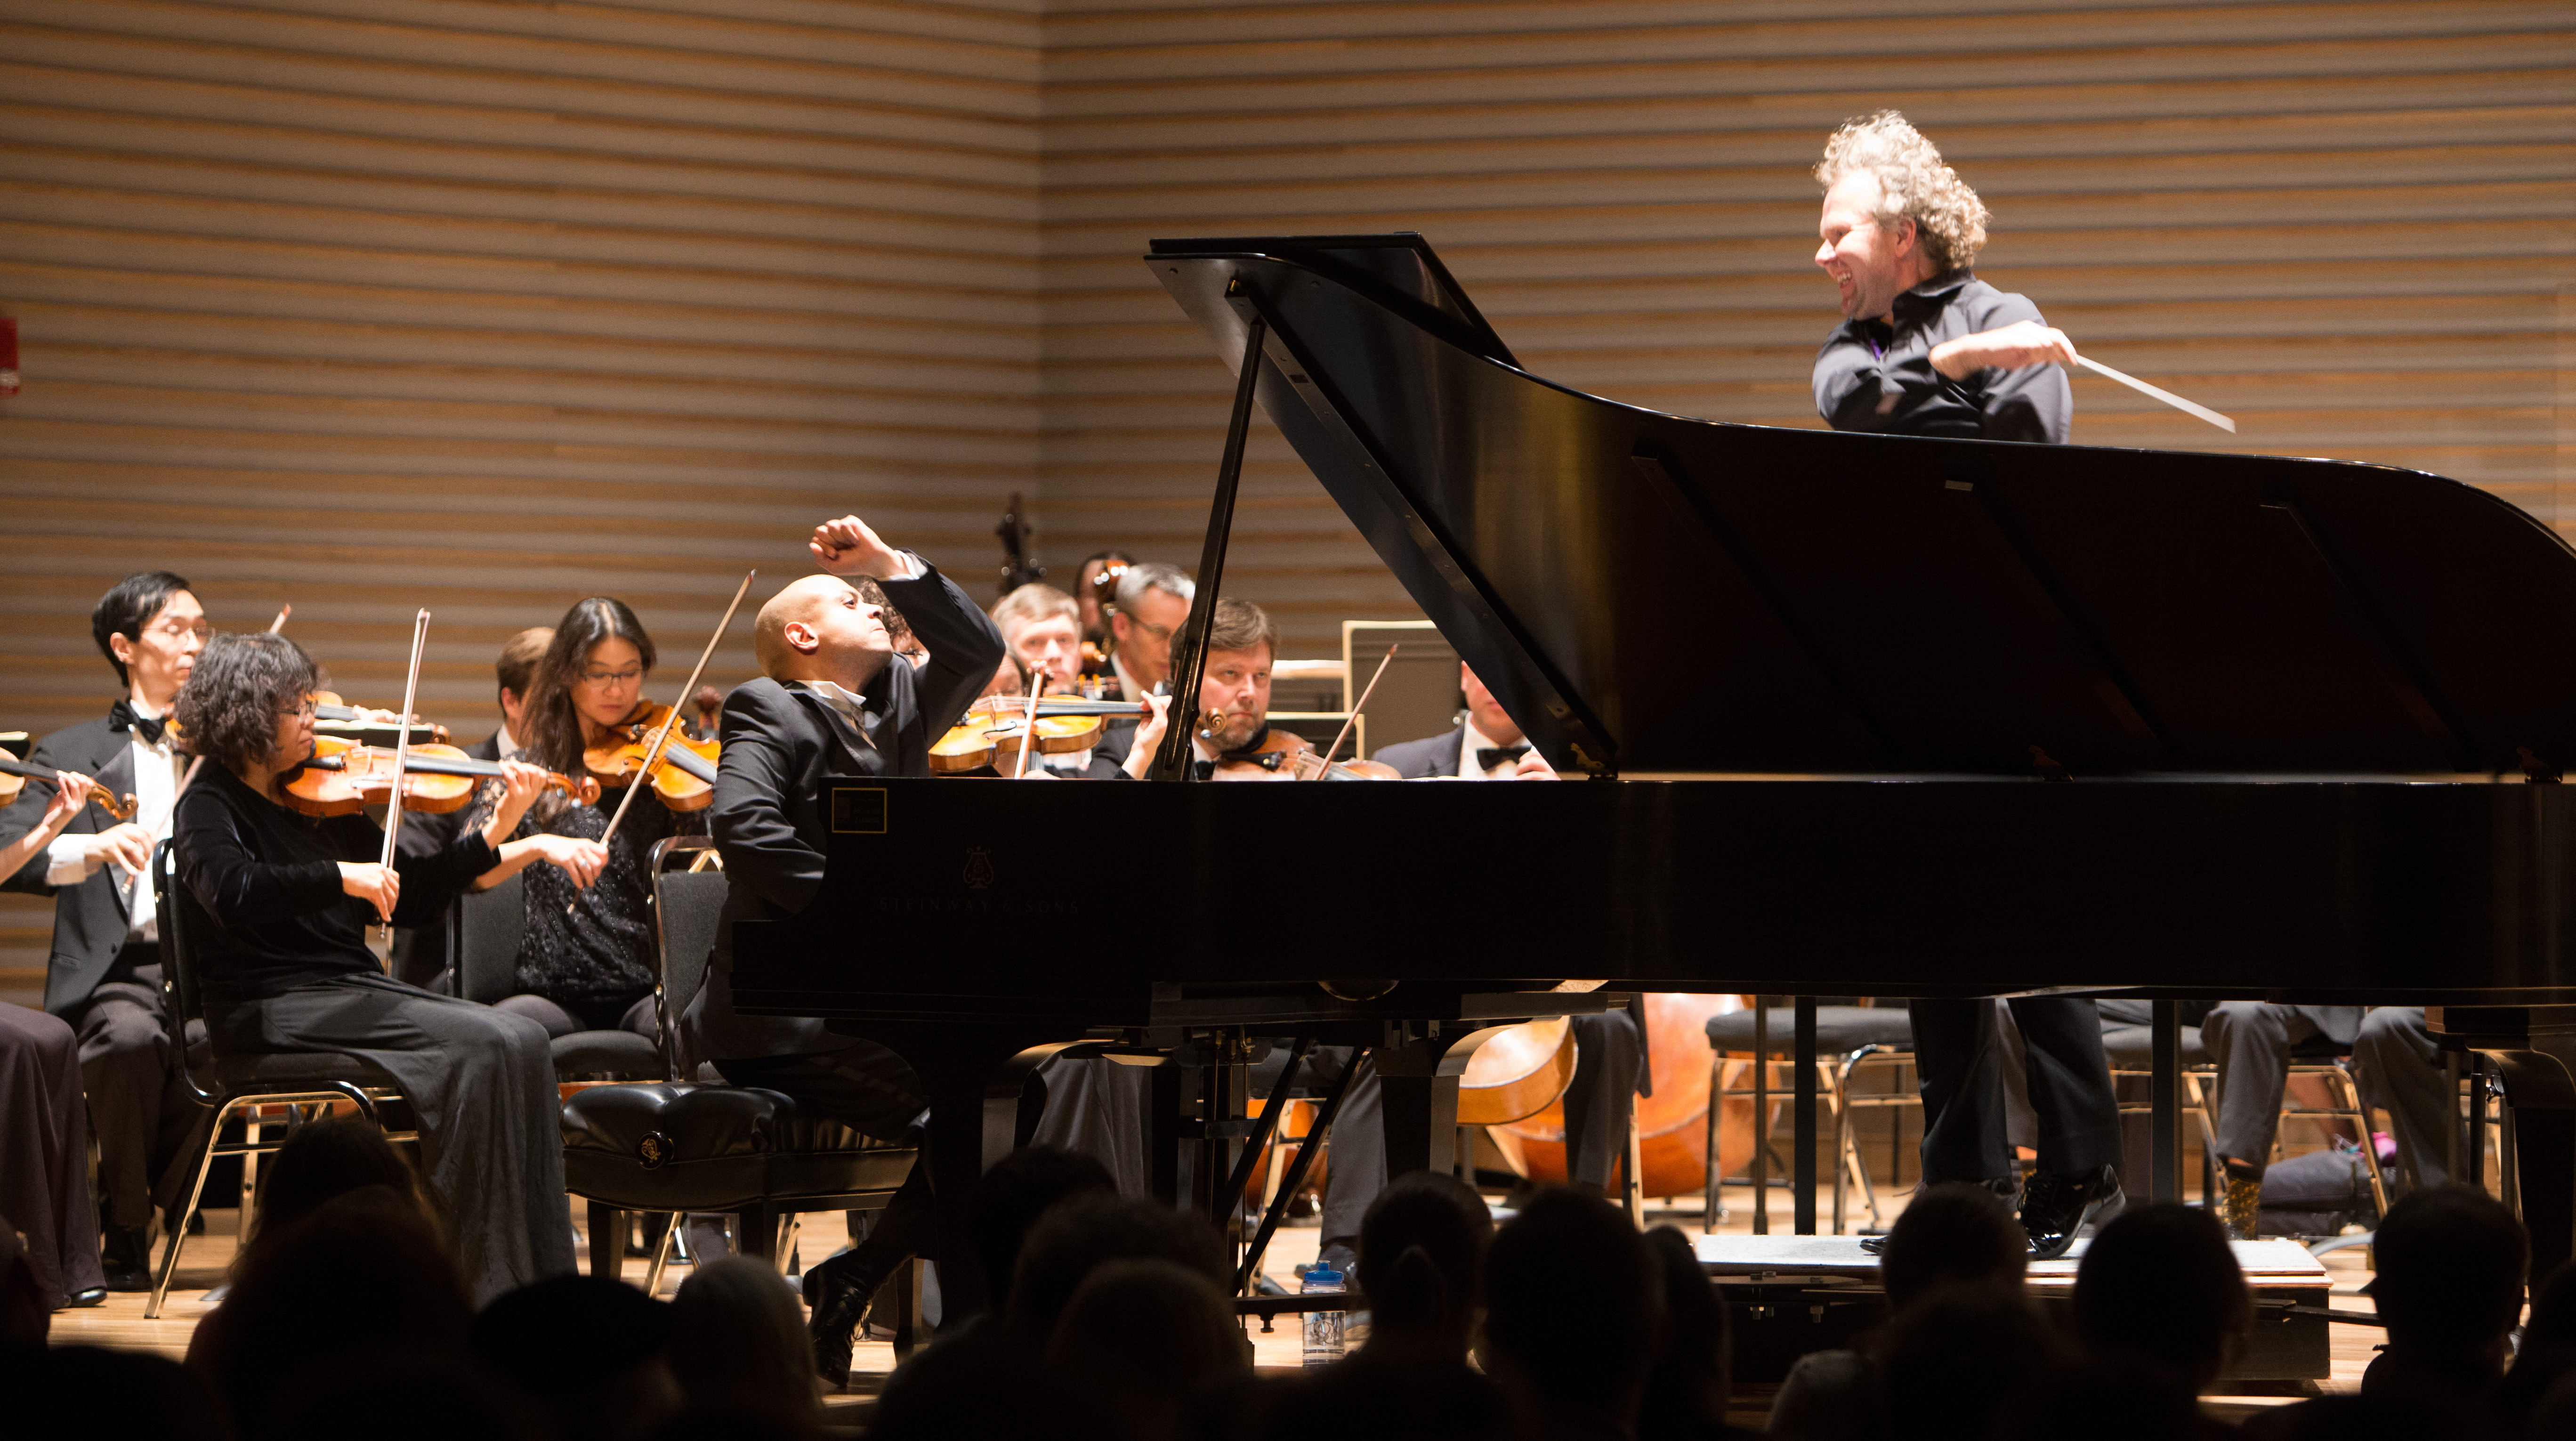 Stewart Goodyear plays piano with orchestra